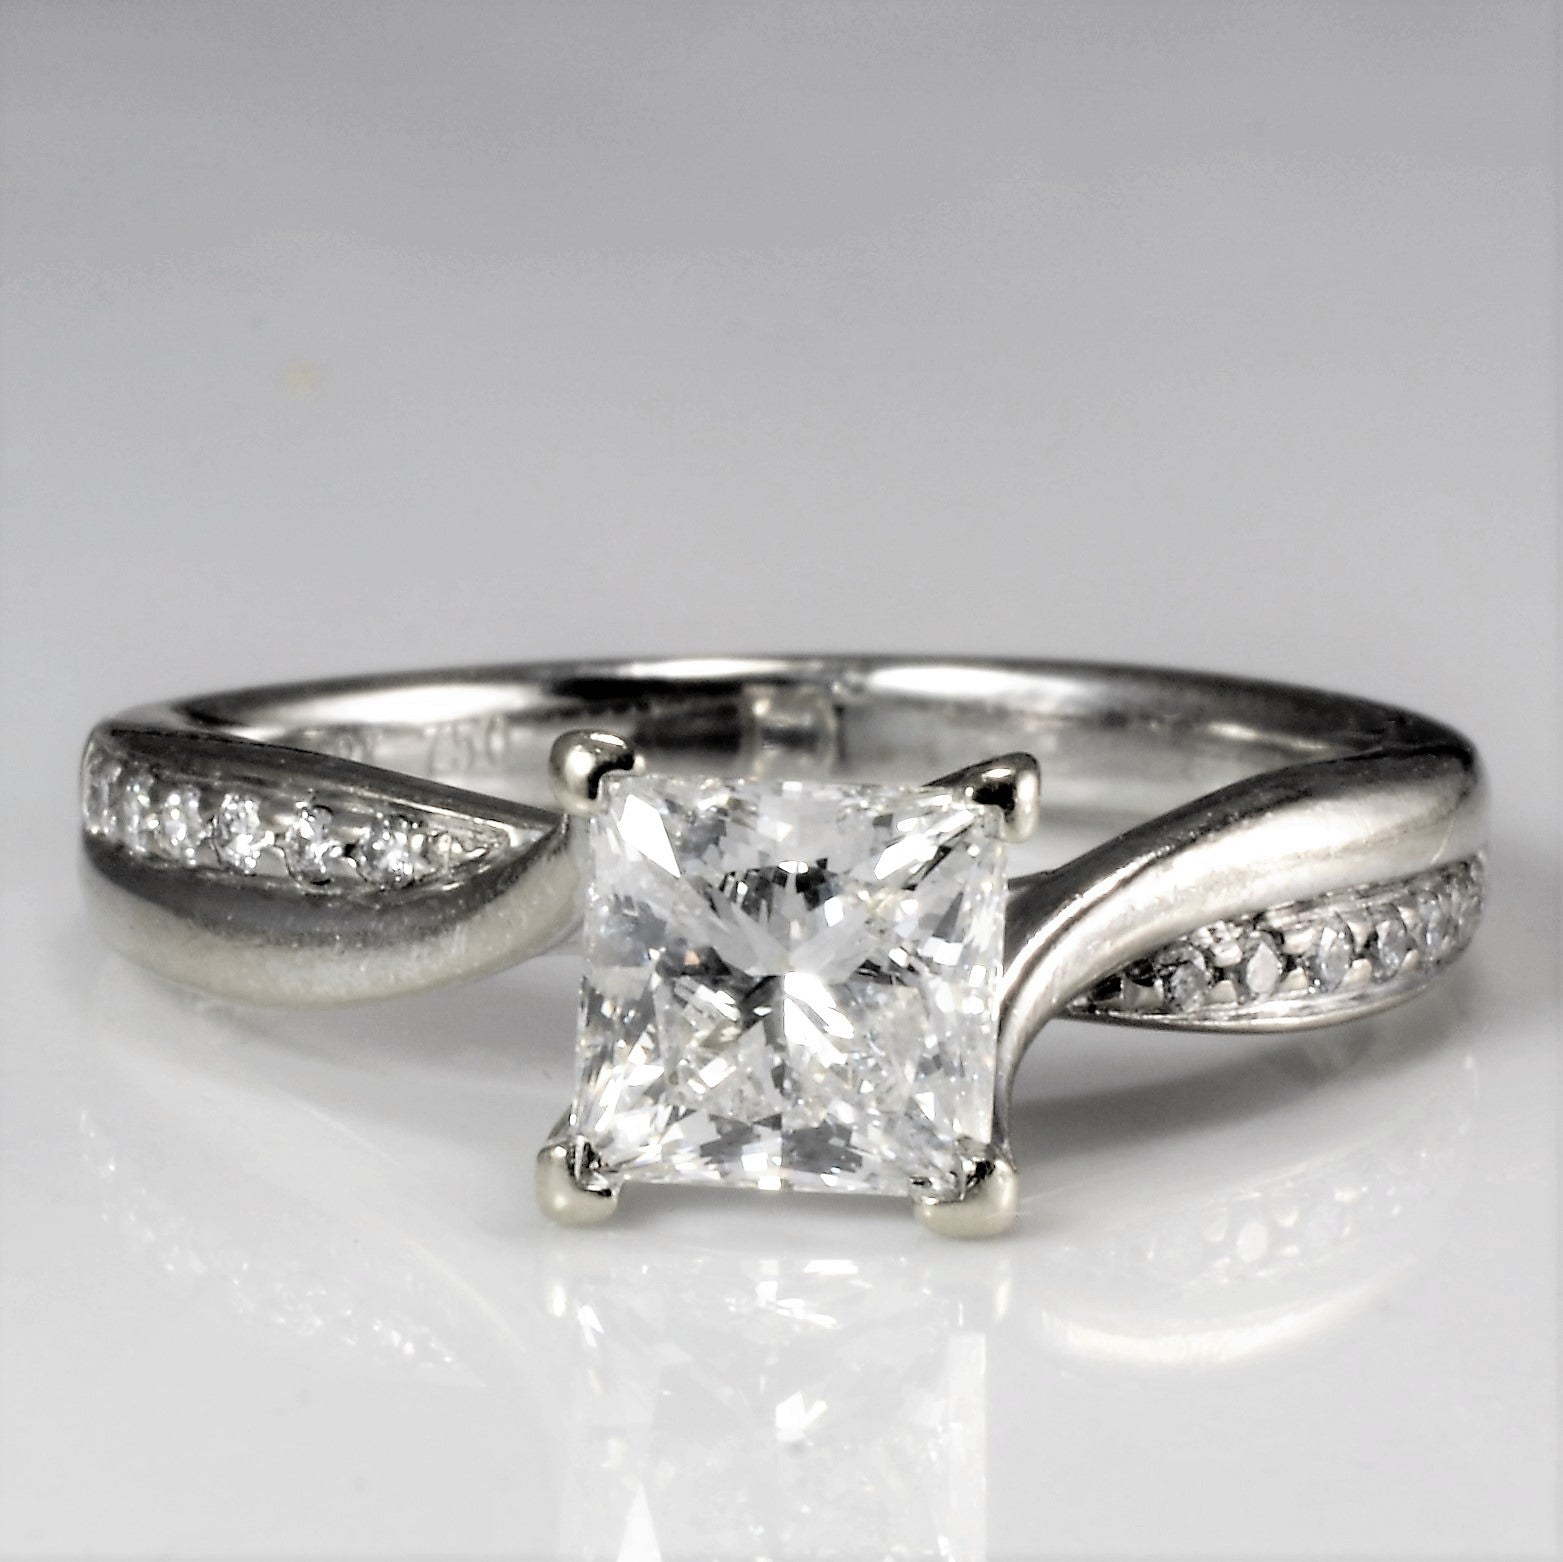 Bypass Princess Cut Diamond Engagement Ring | 1.22 ctw, SZ 6.5 |